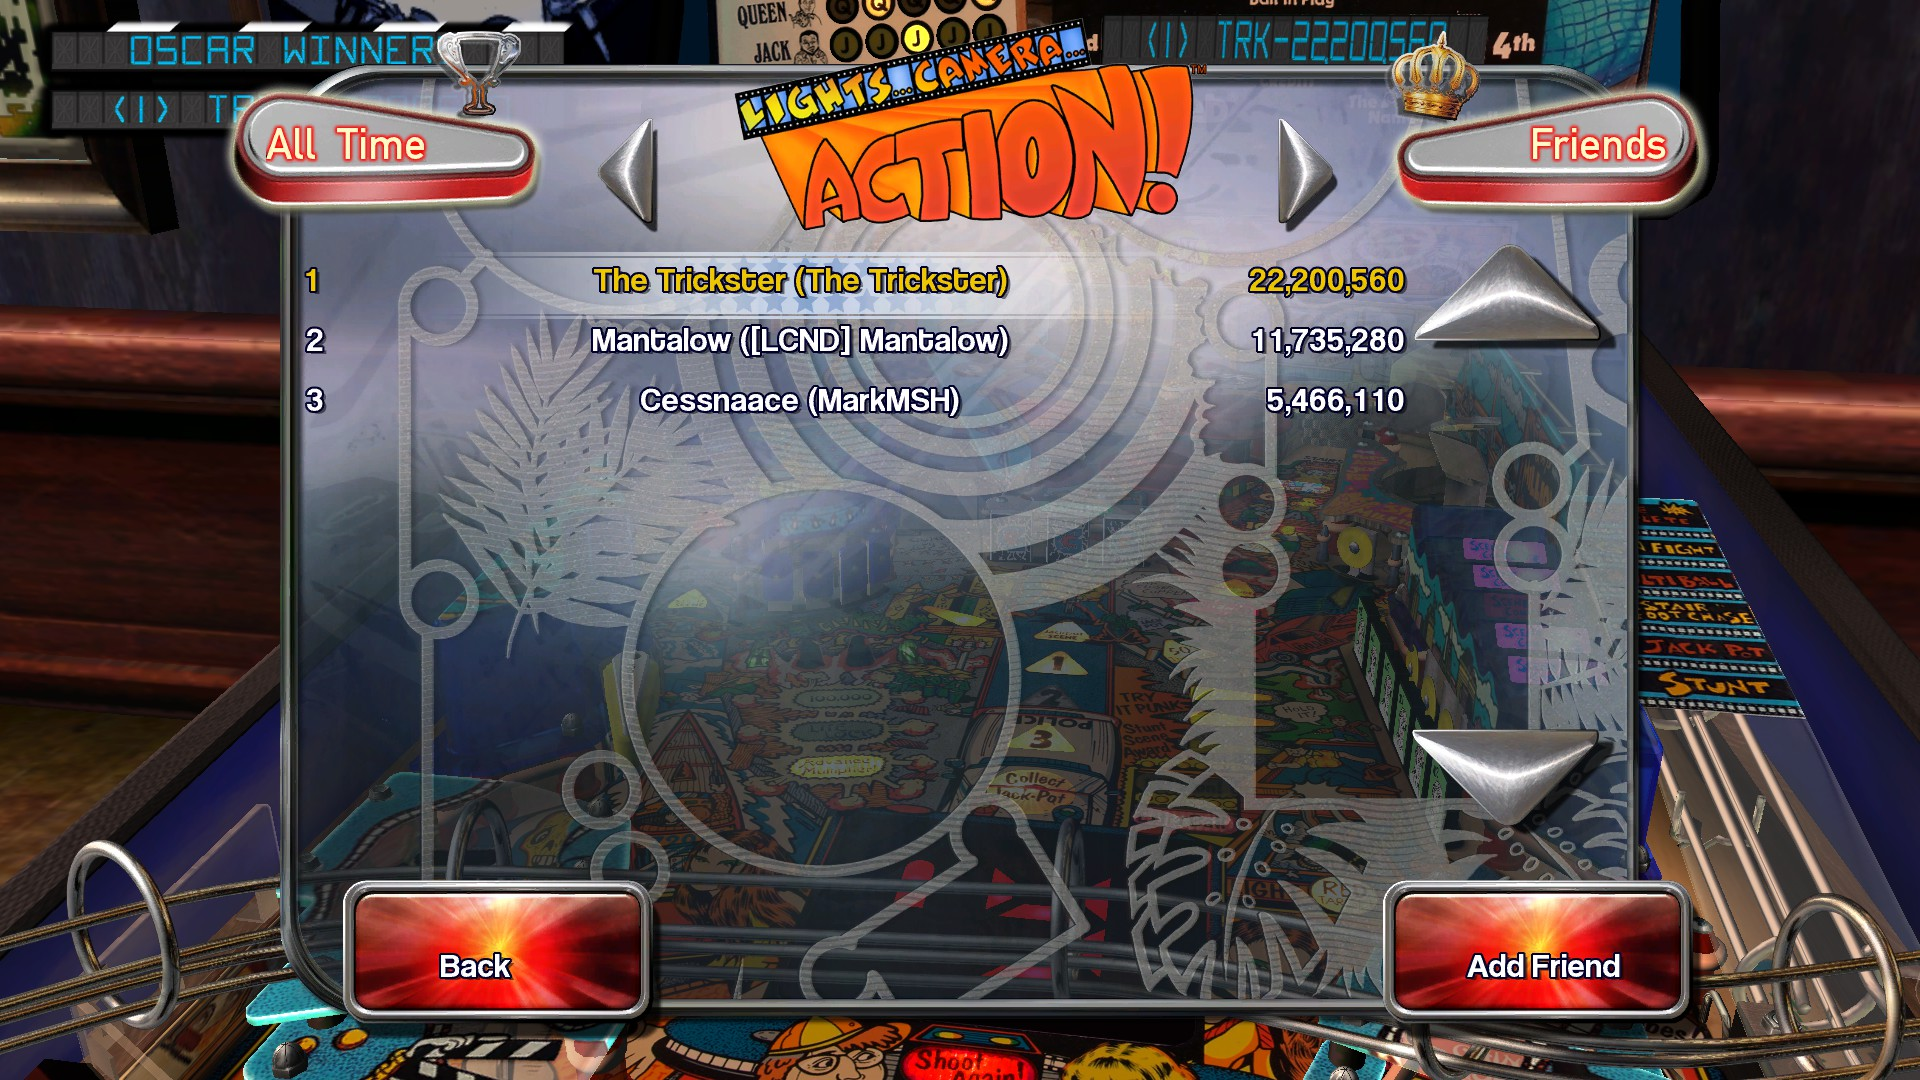 TheTrickster: Pinball Arcade: Lights...Camera...Action! (PC) 22,200,560 points on 2016-03-05 19:24:43